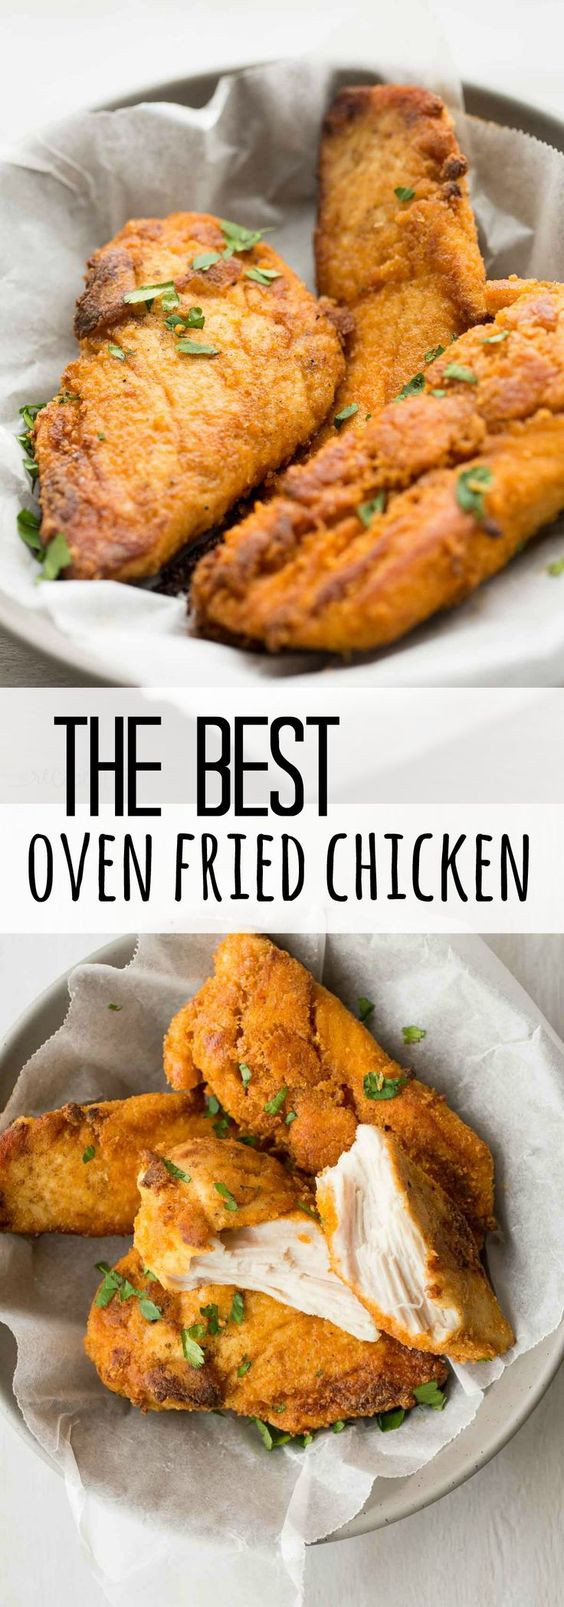 Simple Oven Fried Chicken  The Best Oven Fried Chicken Recipe